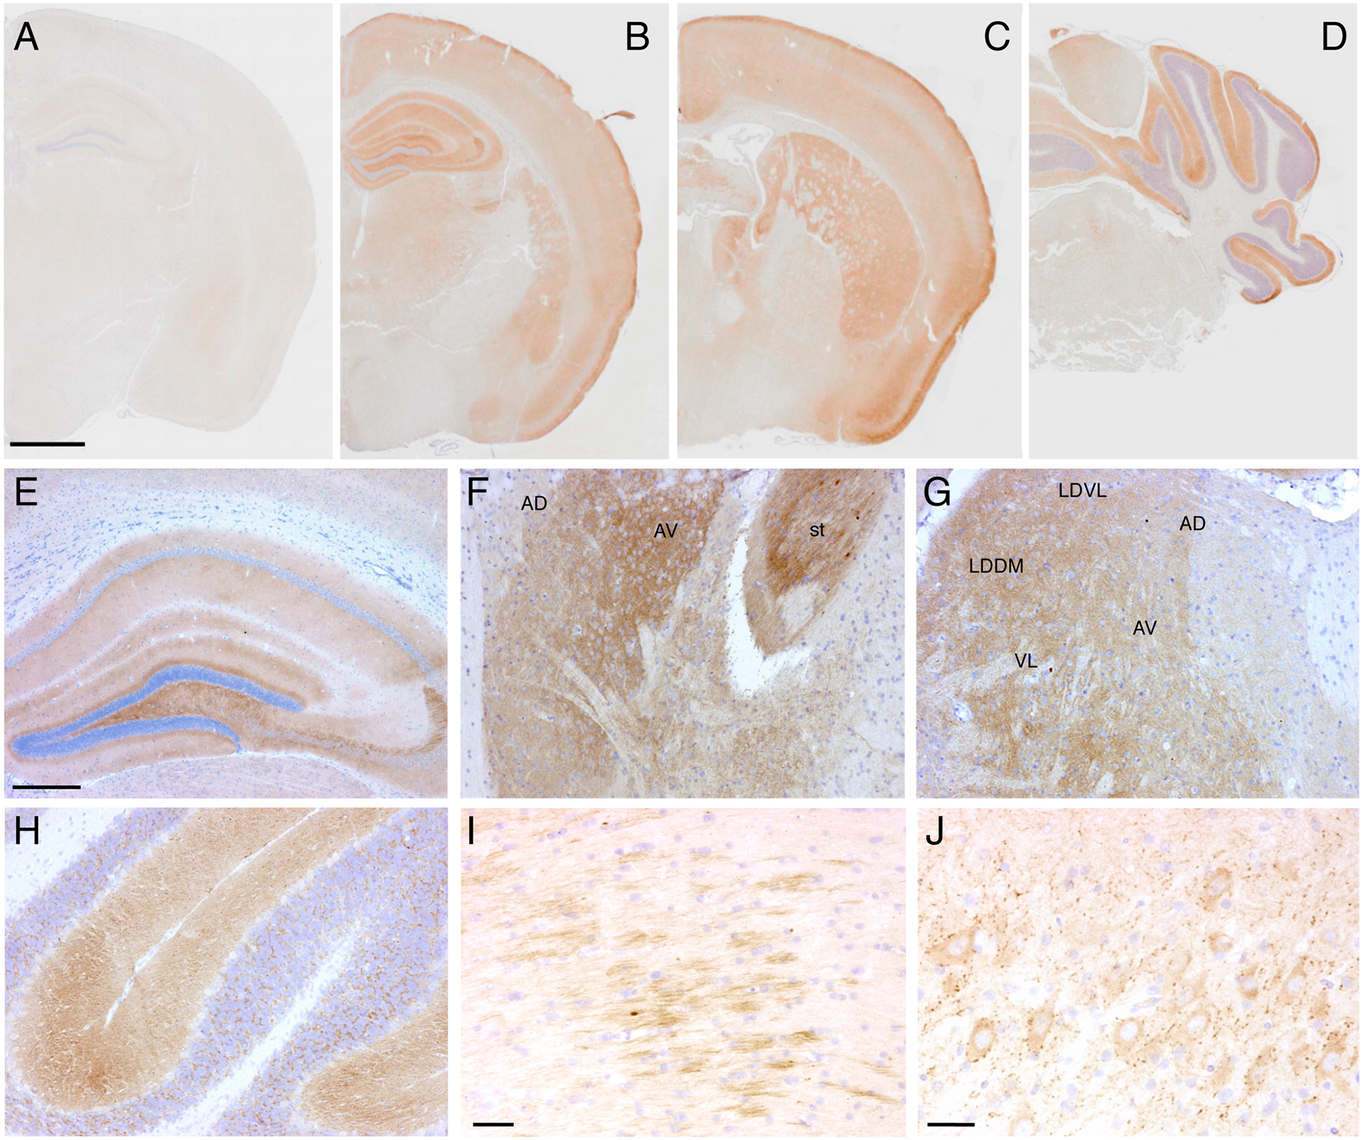 Tg(FFI) mice show cerebral accumulation of protease-resistant PrP.